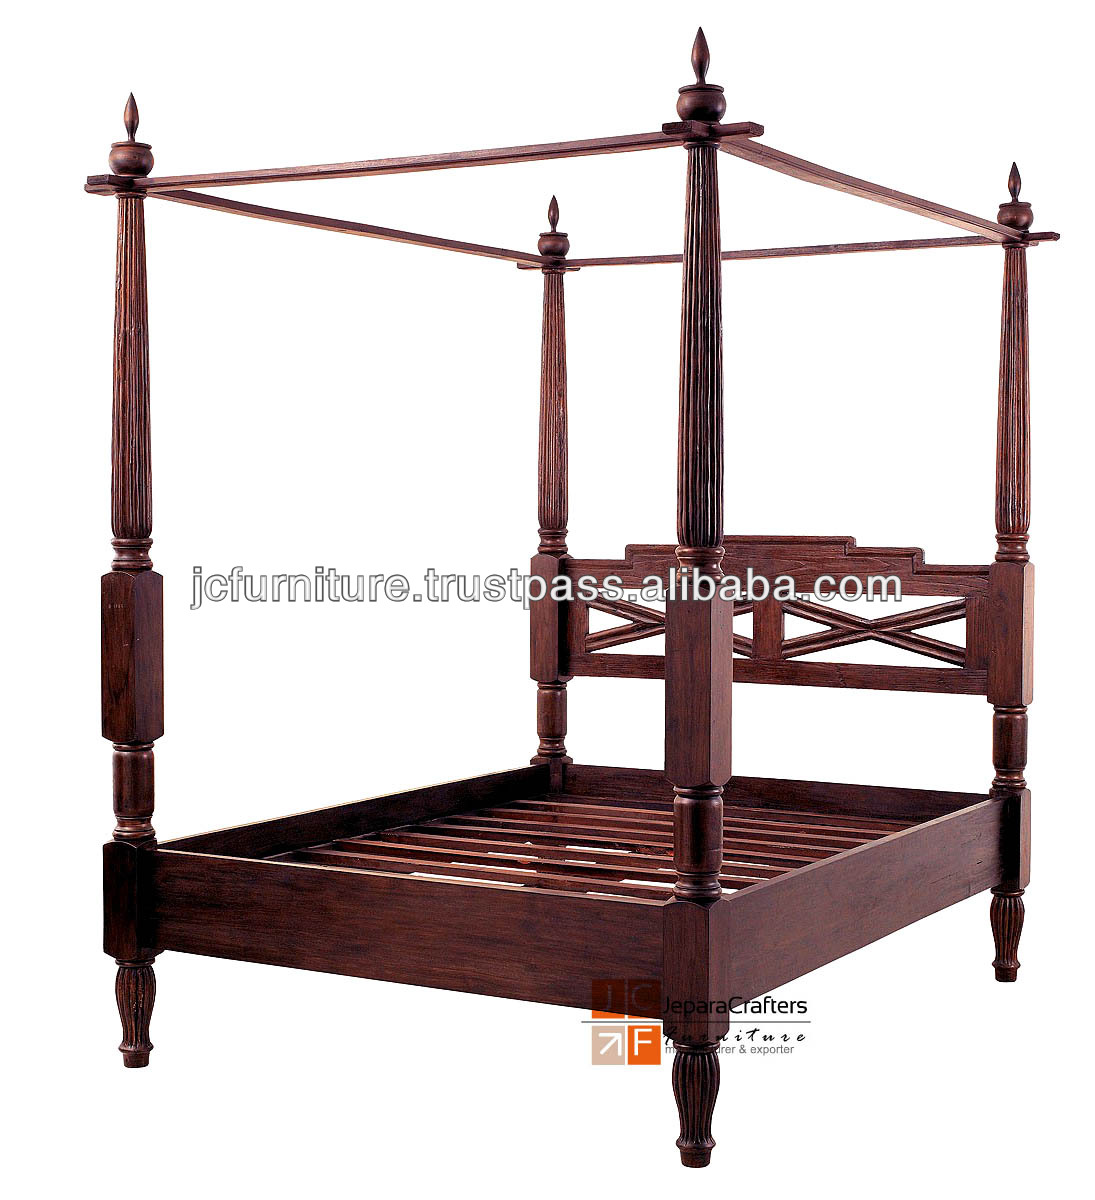 Four Post Canopy Bed antique canopy bed. antique black four post canopy style bed at